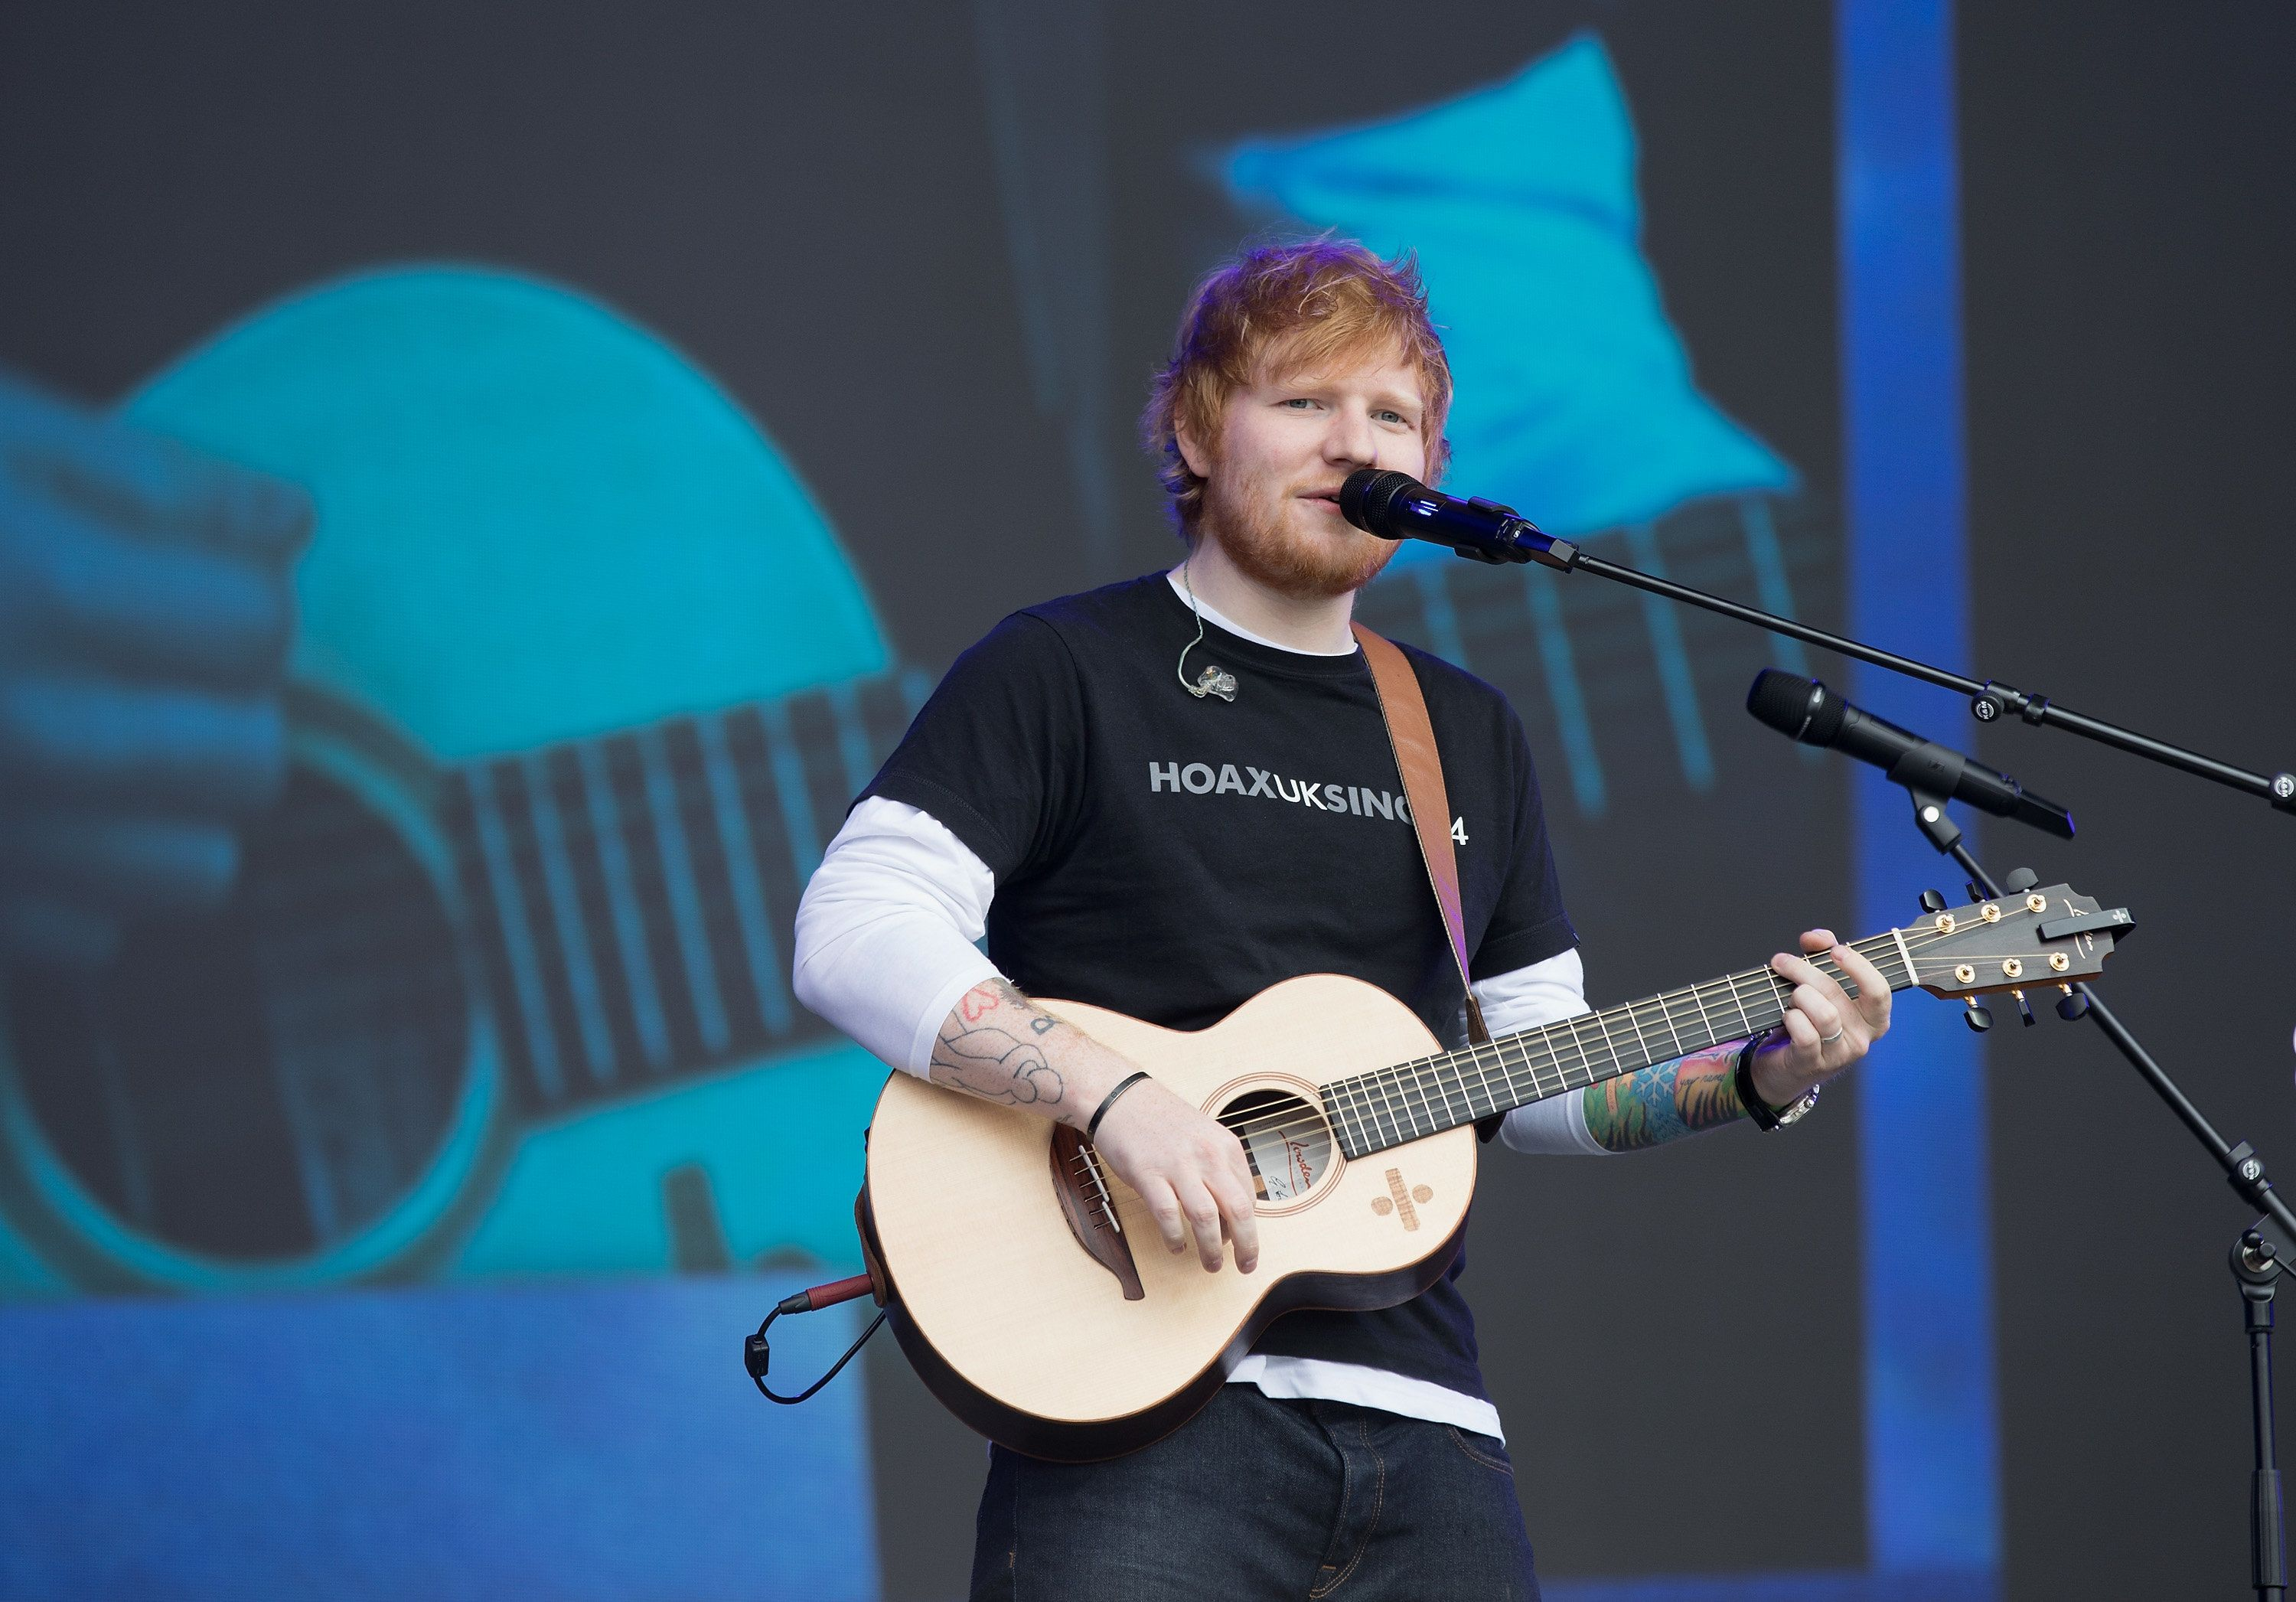 Ed Sheeran 'Takes Legal Action' After 'Shape Of You' Royalties